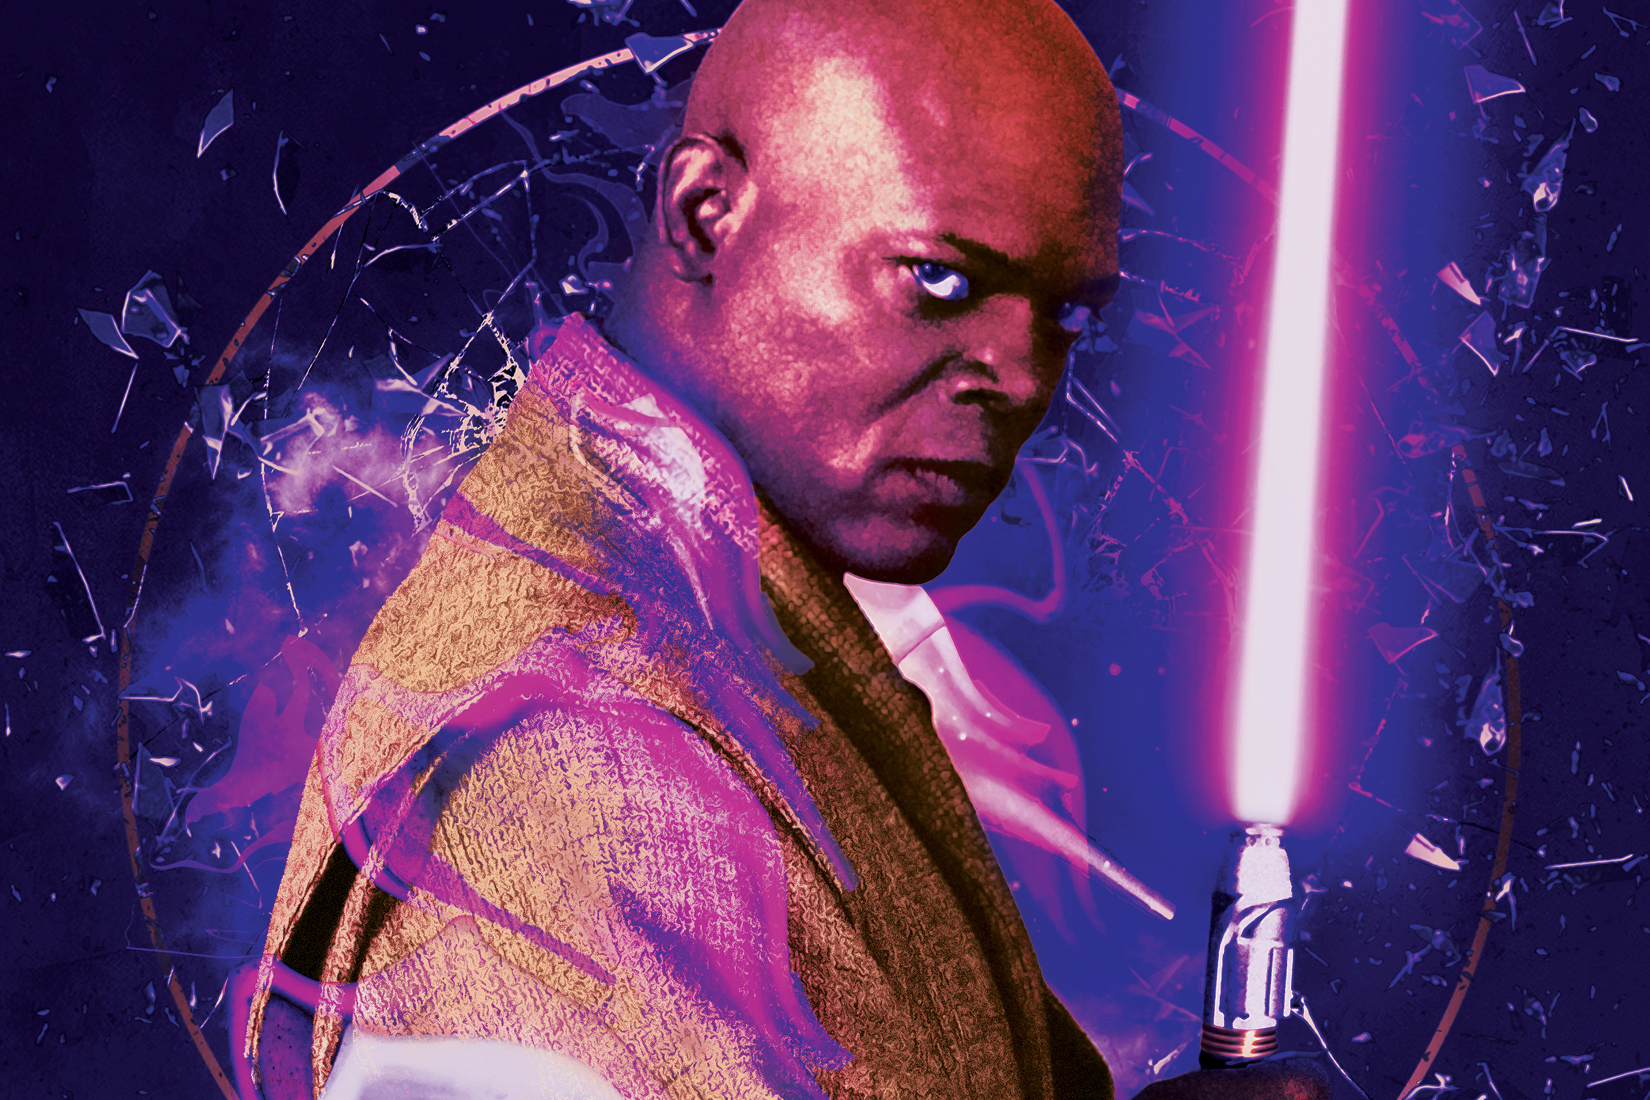 a close-up of Mace Windu (Samuel L. Jackson) on the cover of Shatterpoint